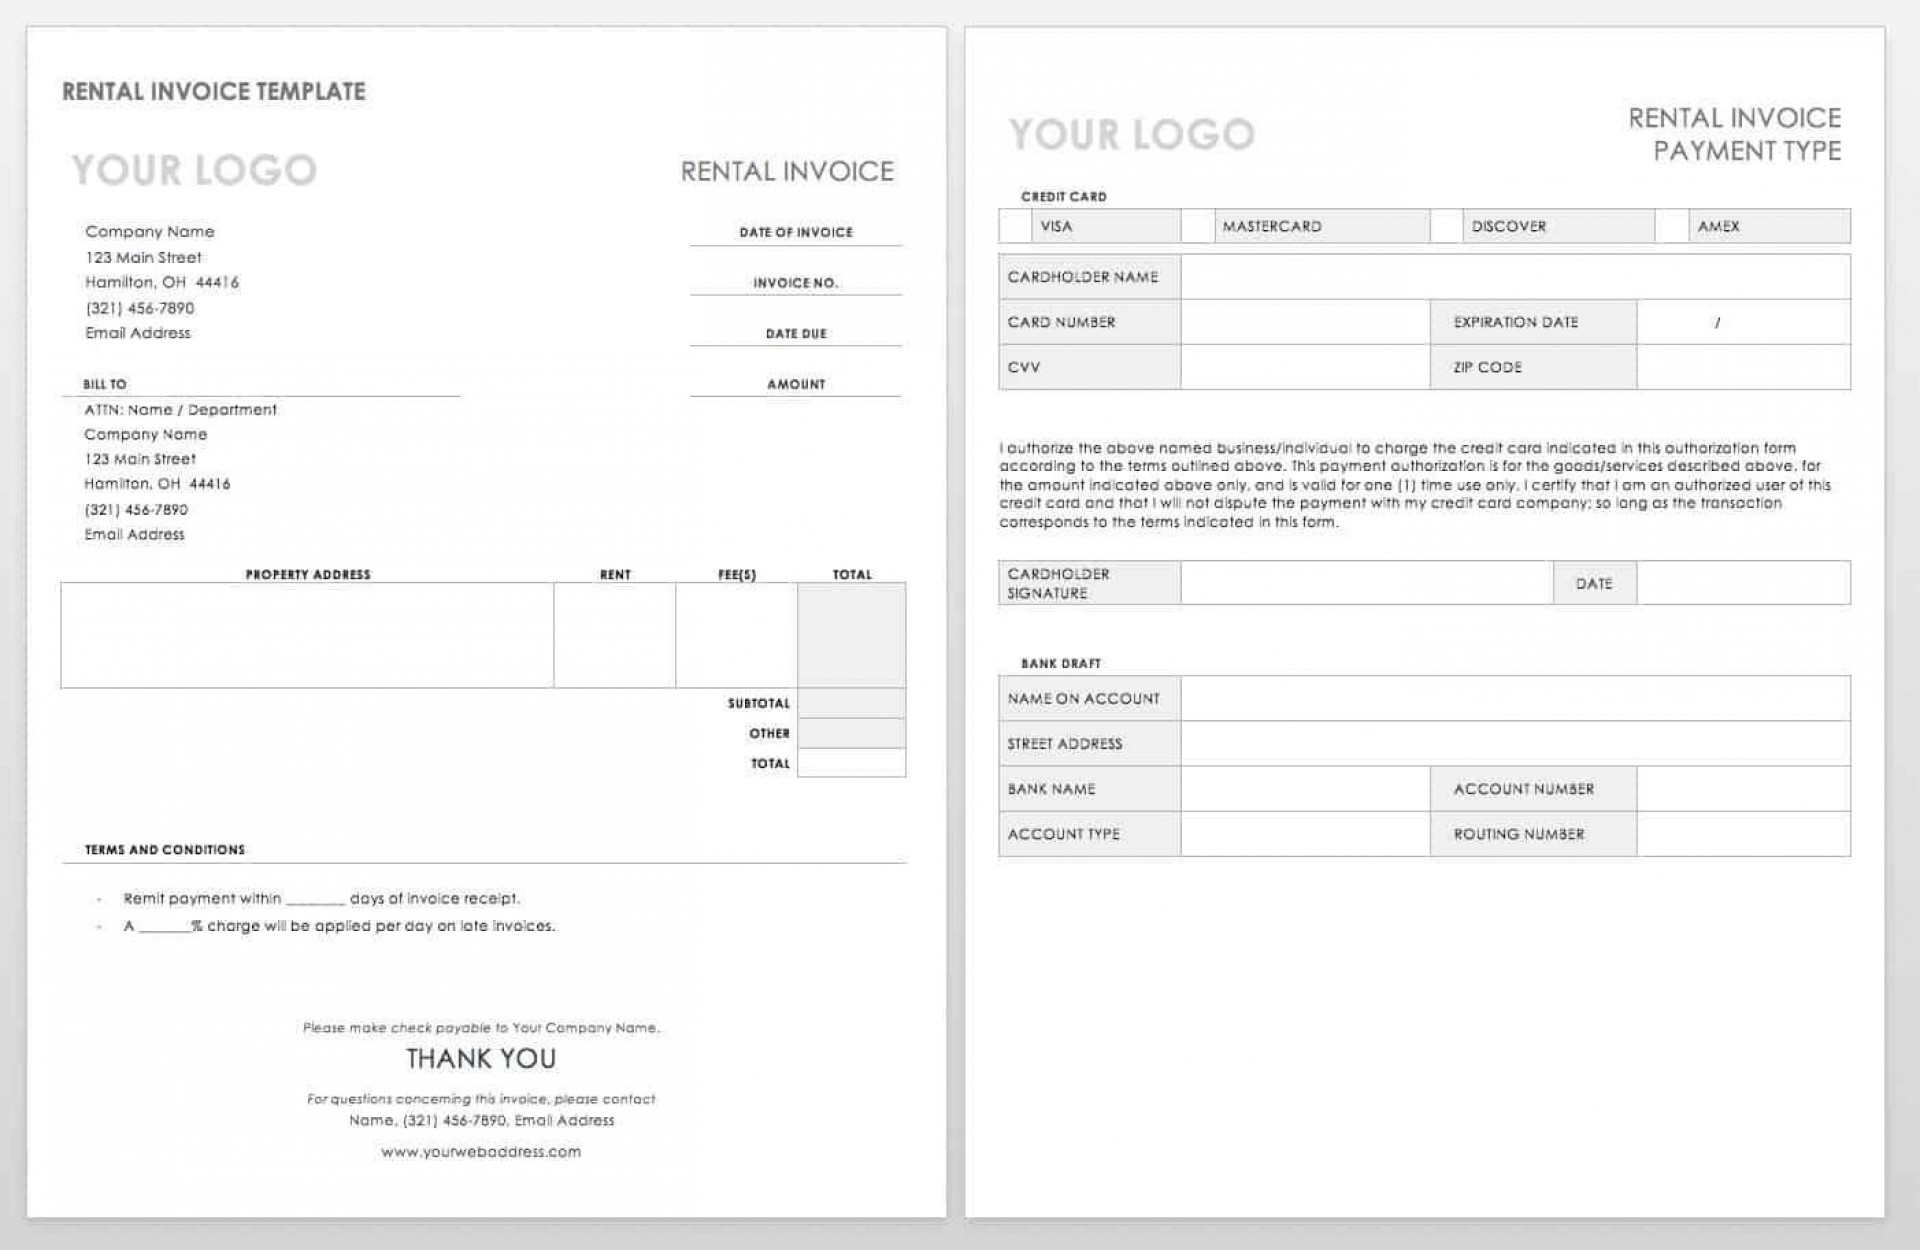 008 Stirring Free Blank Invoice Template Excel Inspiration  Download Downloadable1920